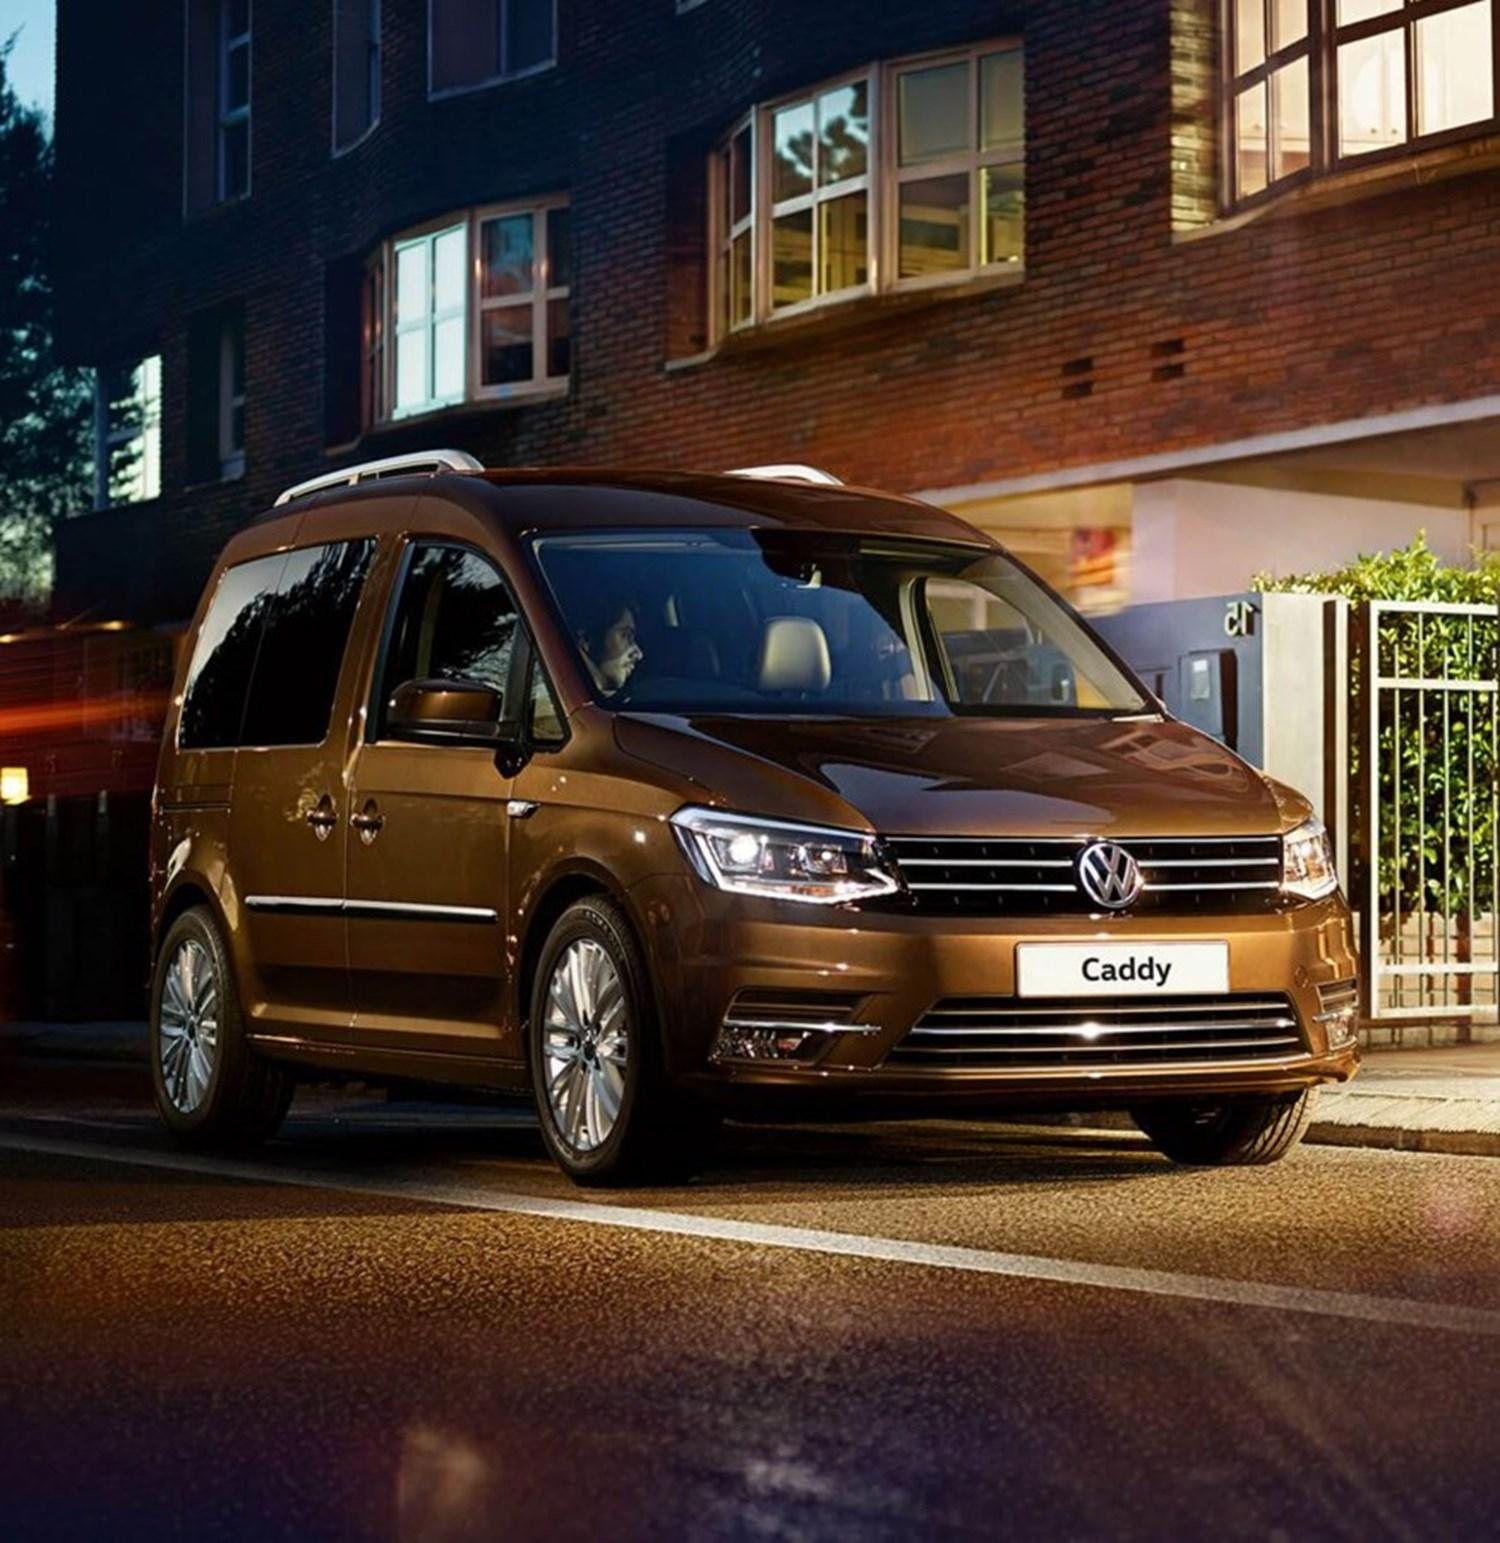 Brown Volkswagen Caddy parked on street at night